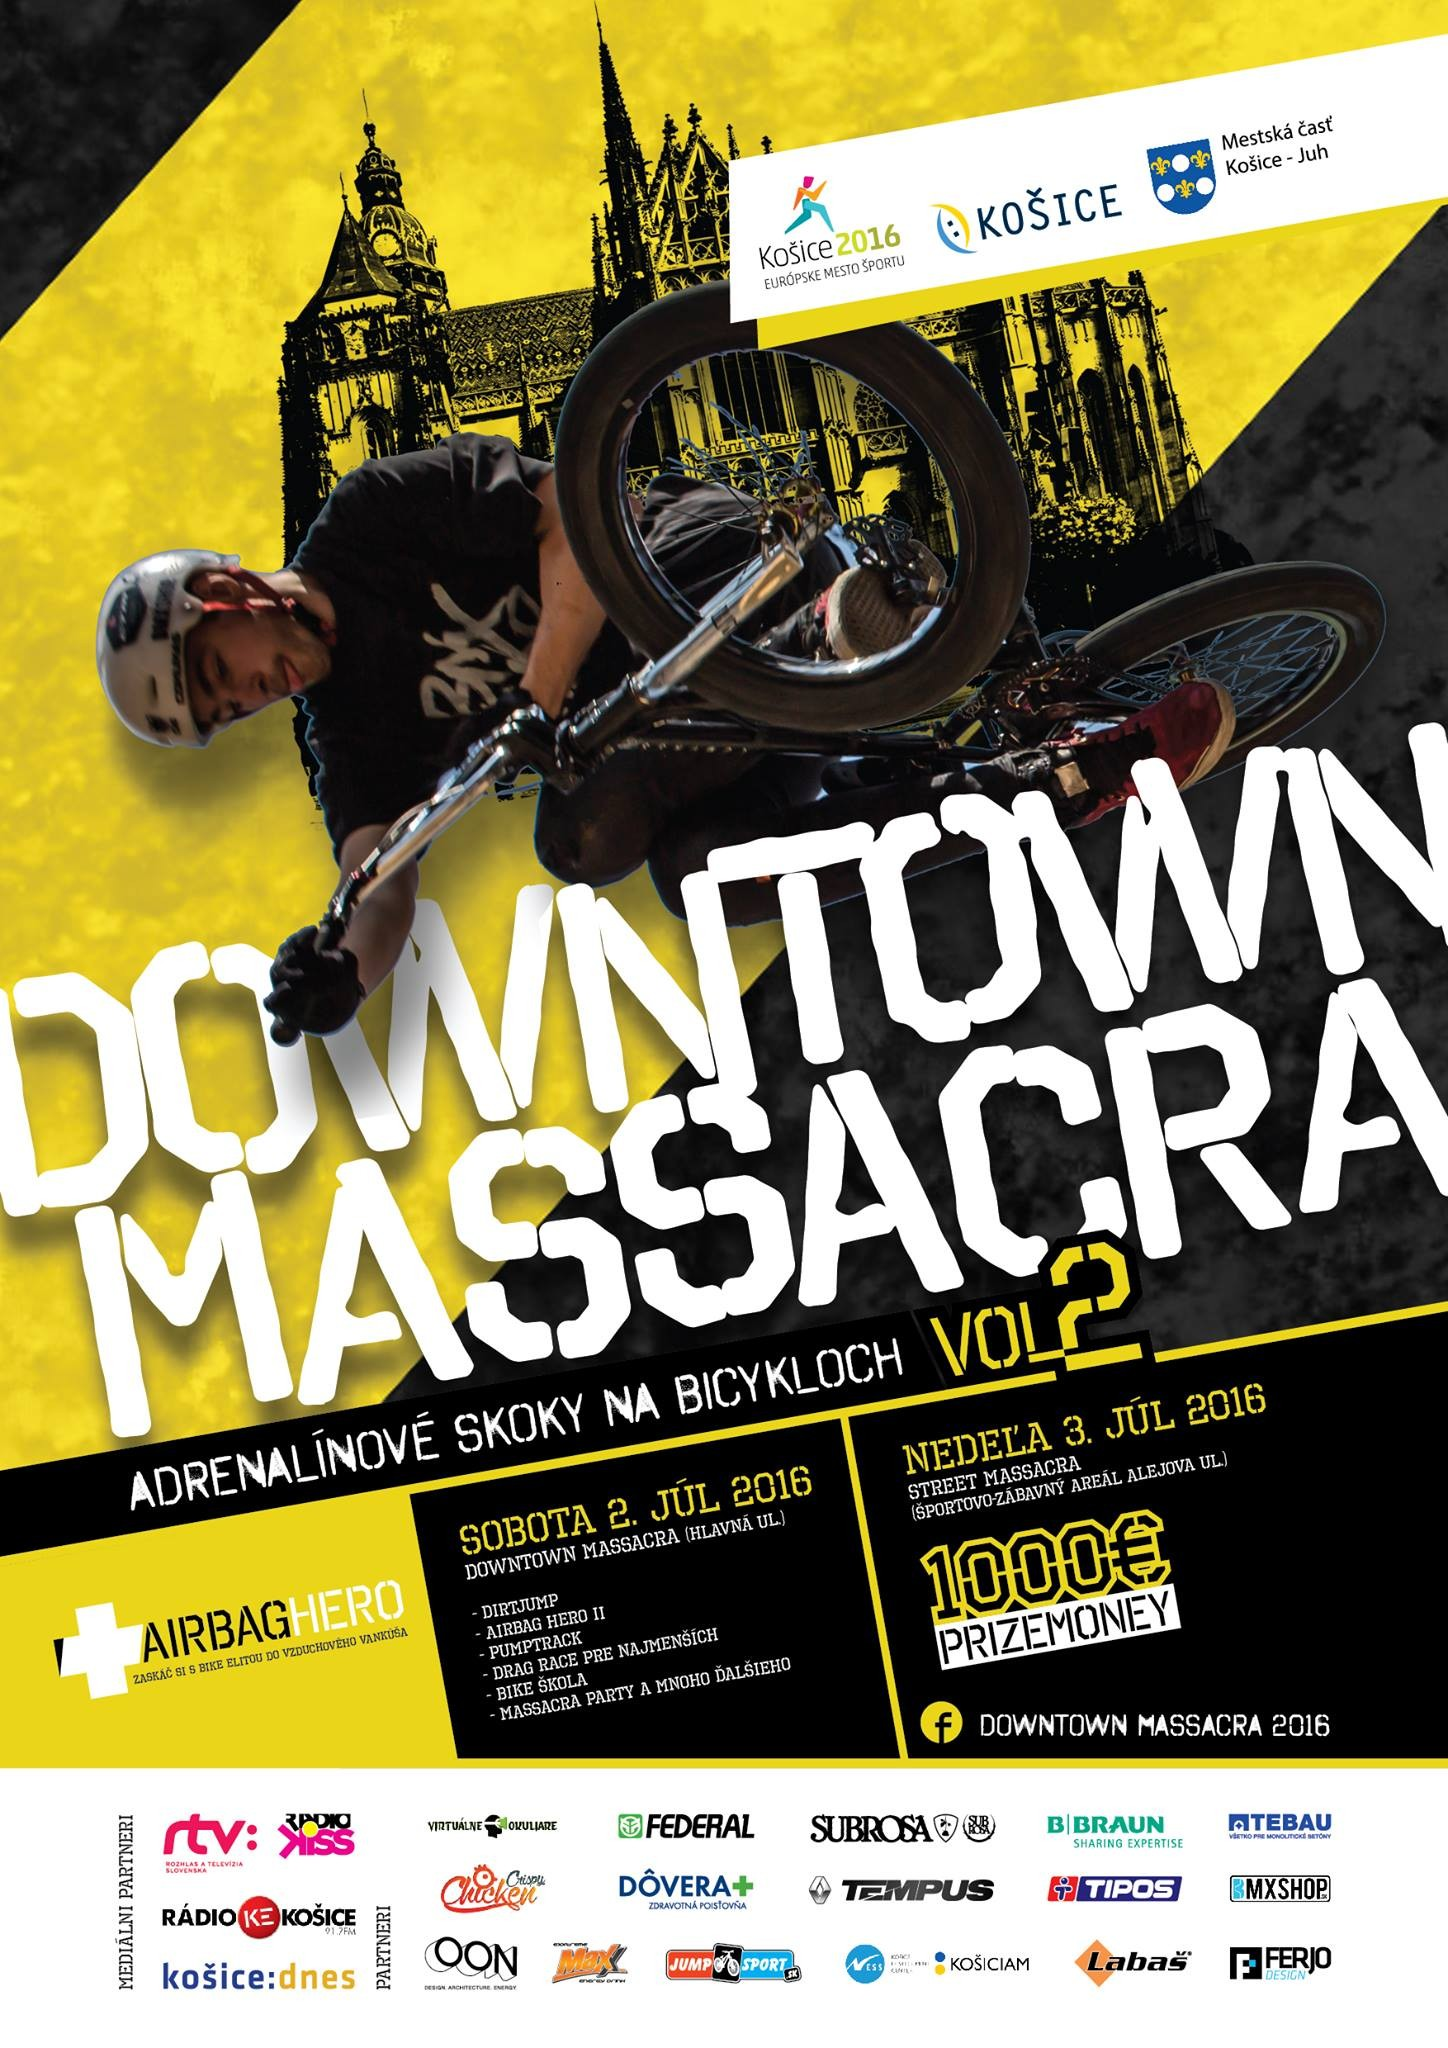 plagat Downtown Massacra